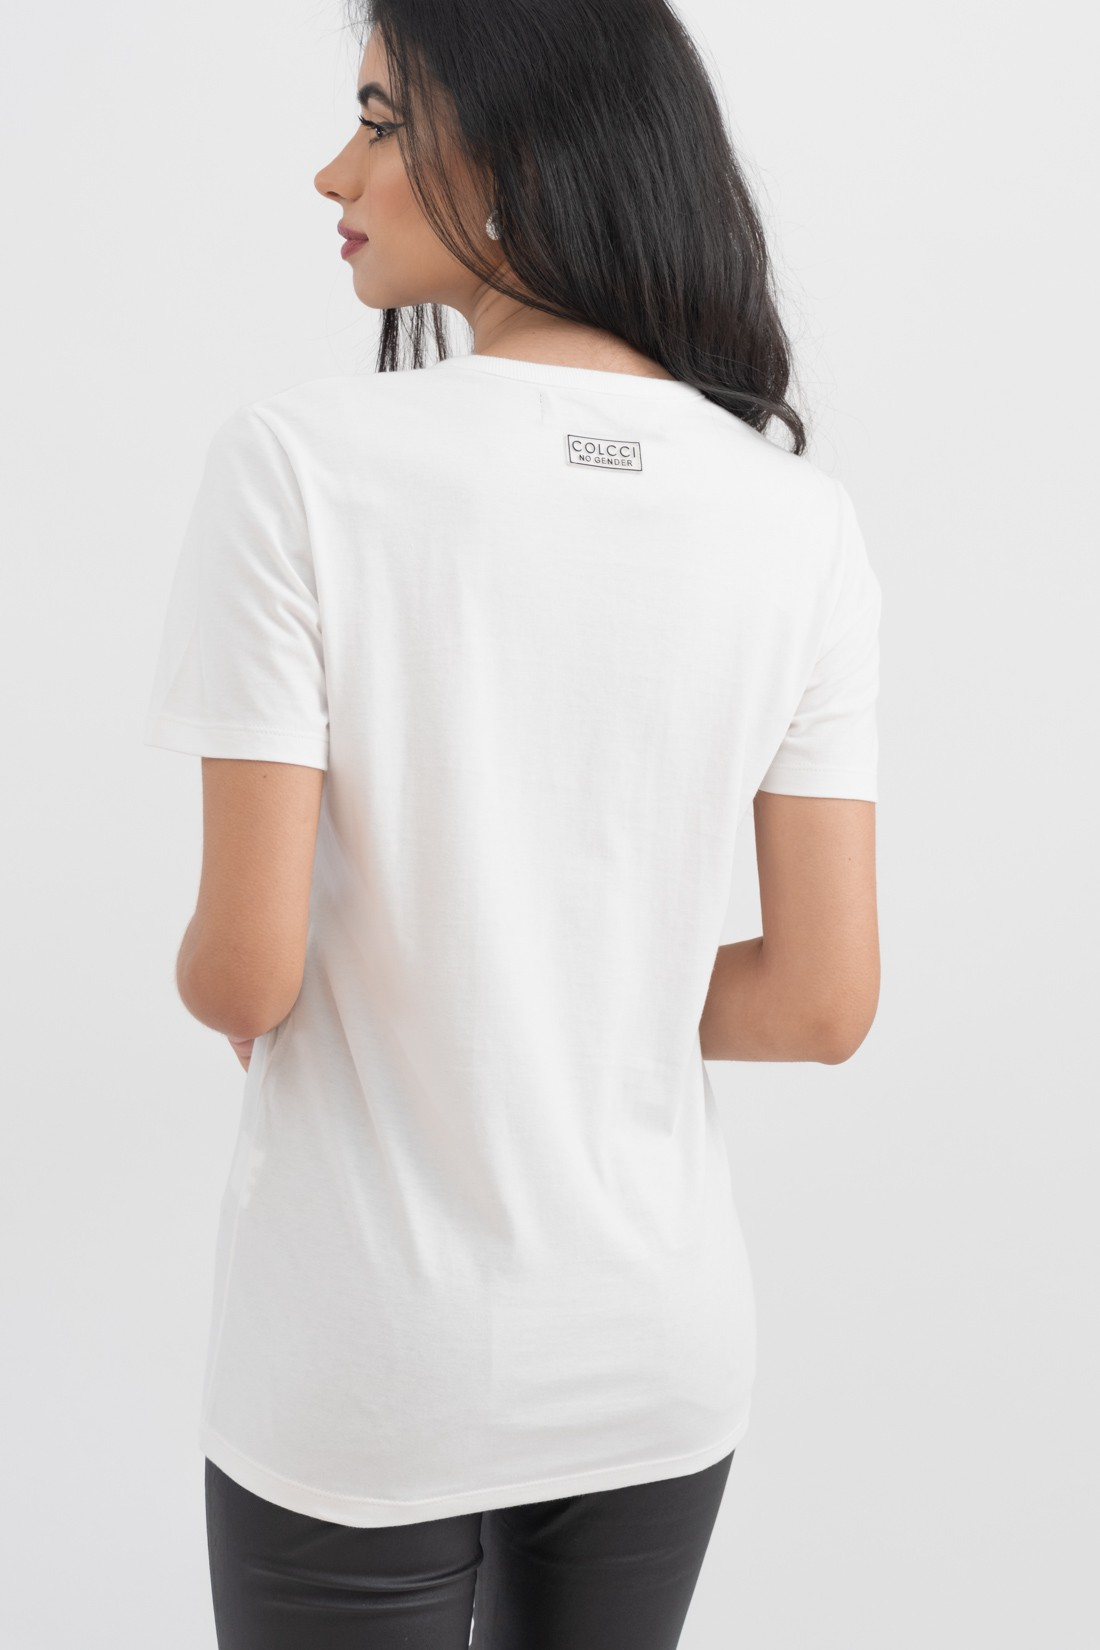 T Shirt Colcci  Forget The Rules